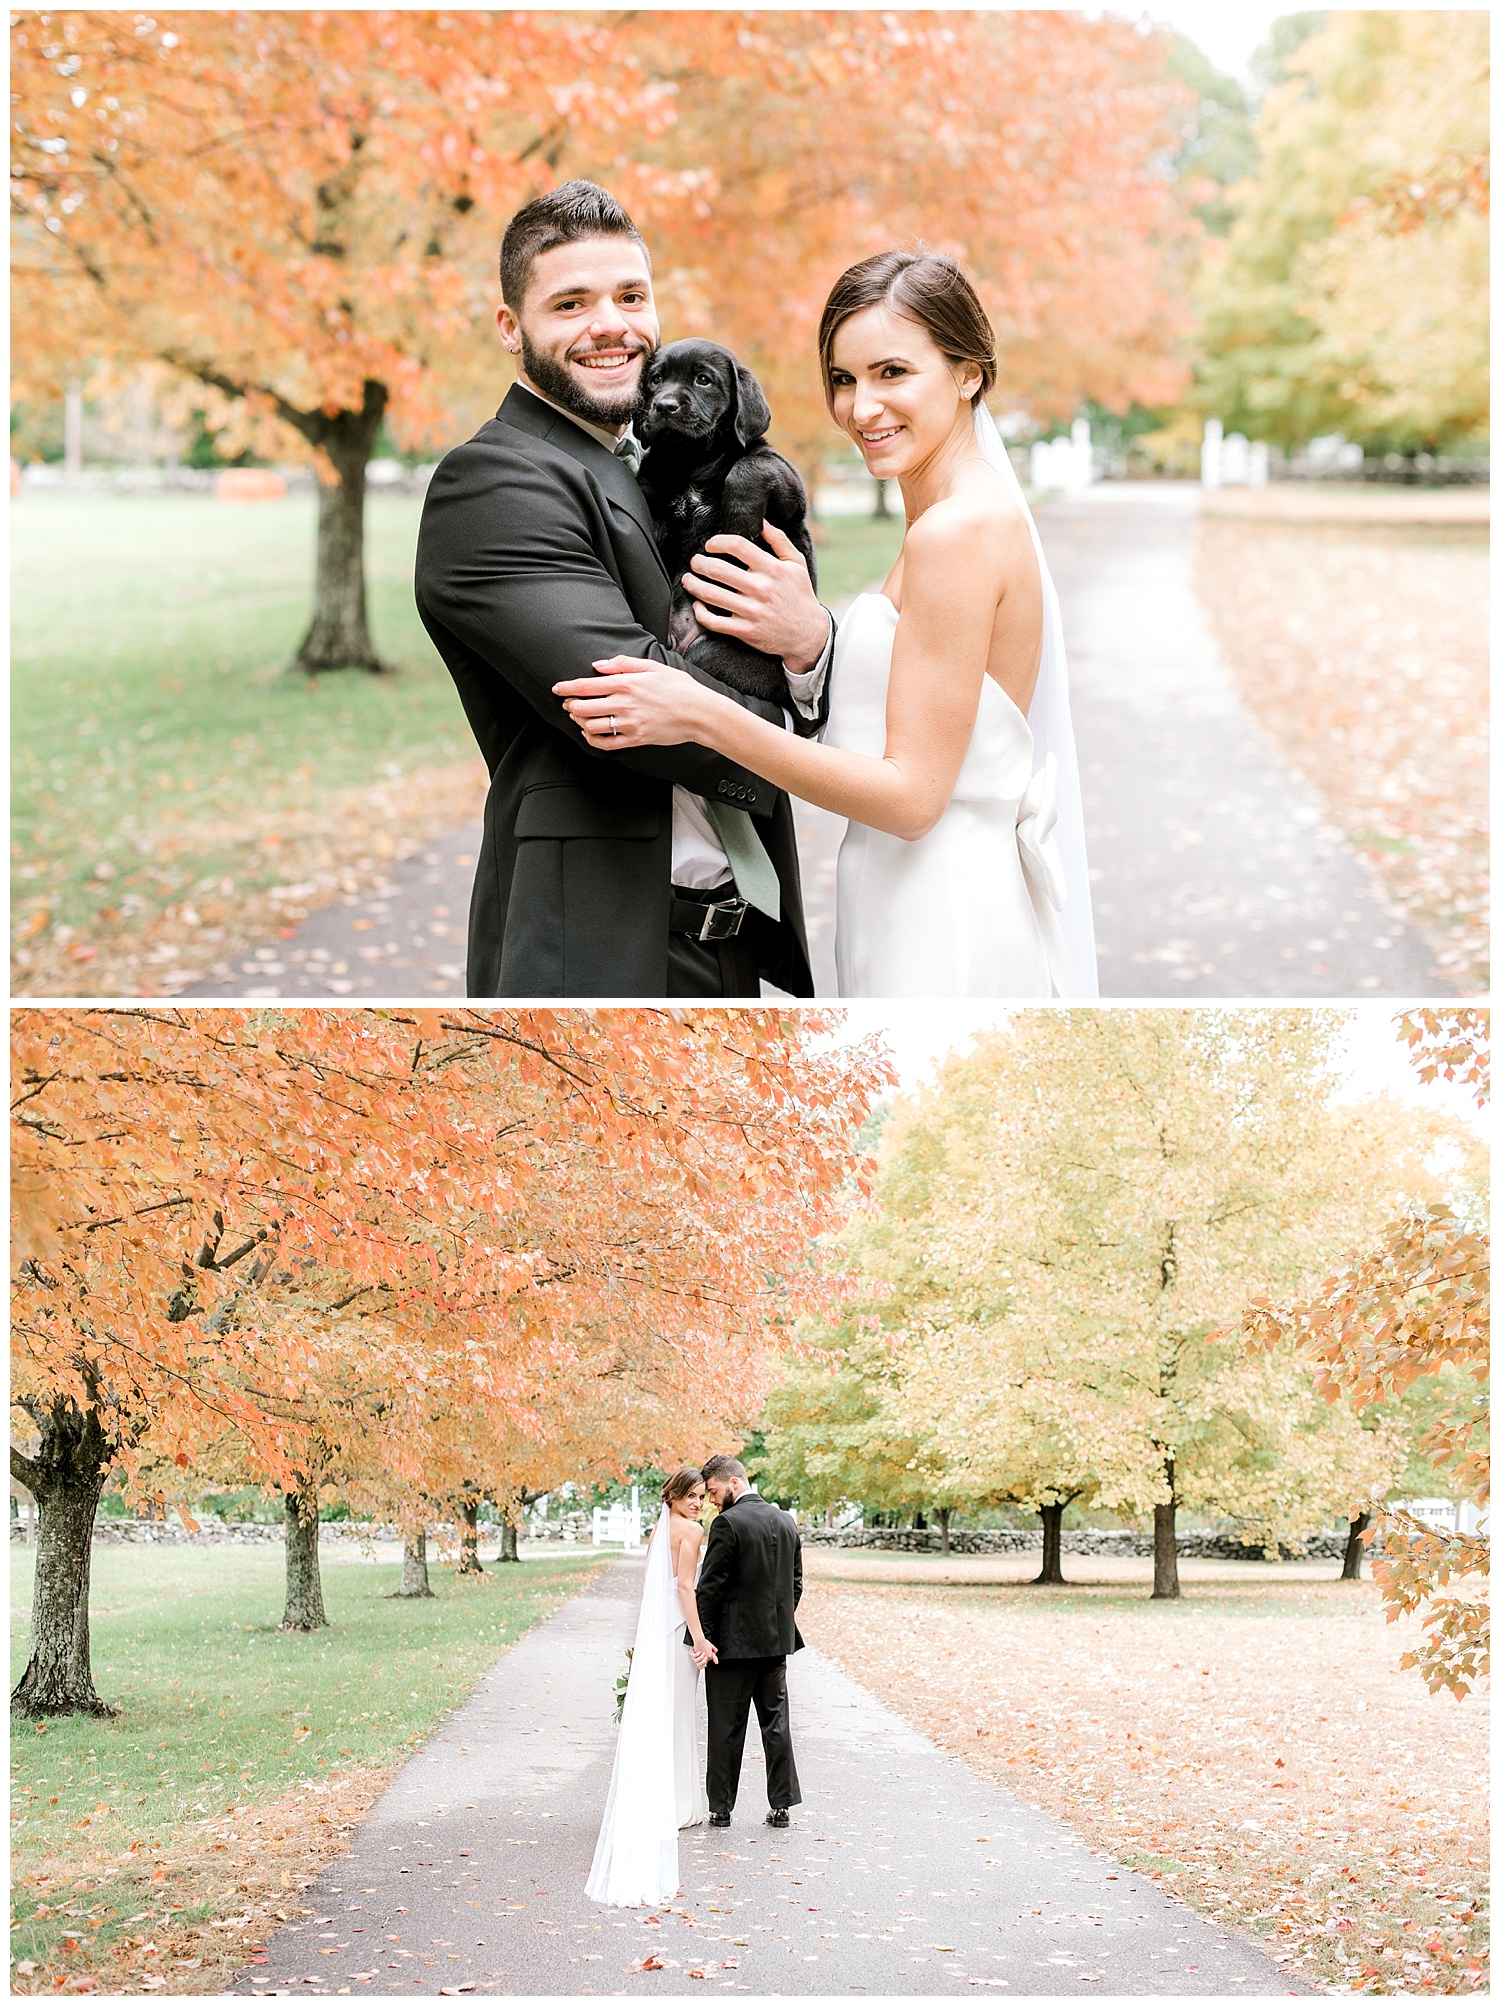 pompositticut-farm-fall-wedding-photography-hudson-massachusetts-photo-24.jpg